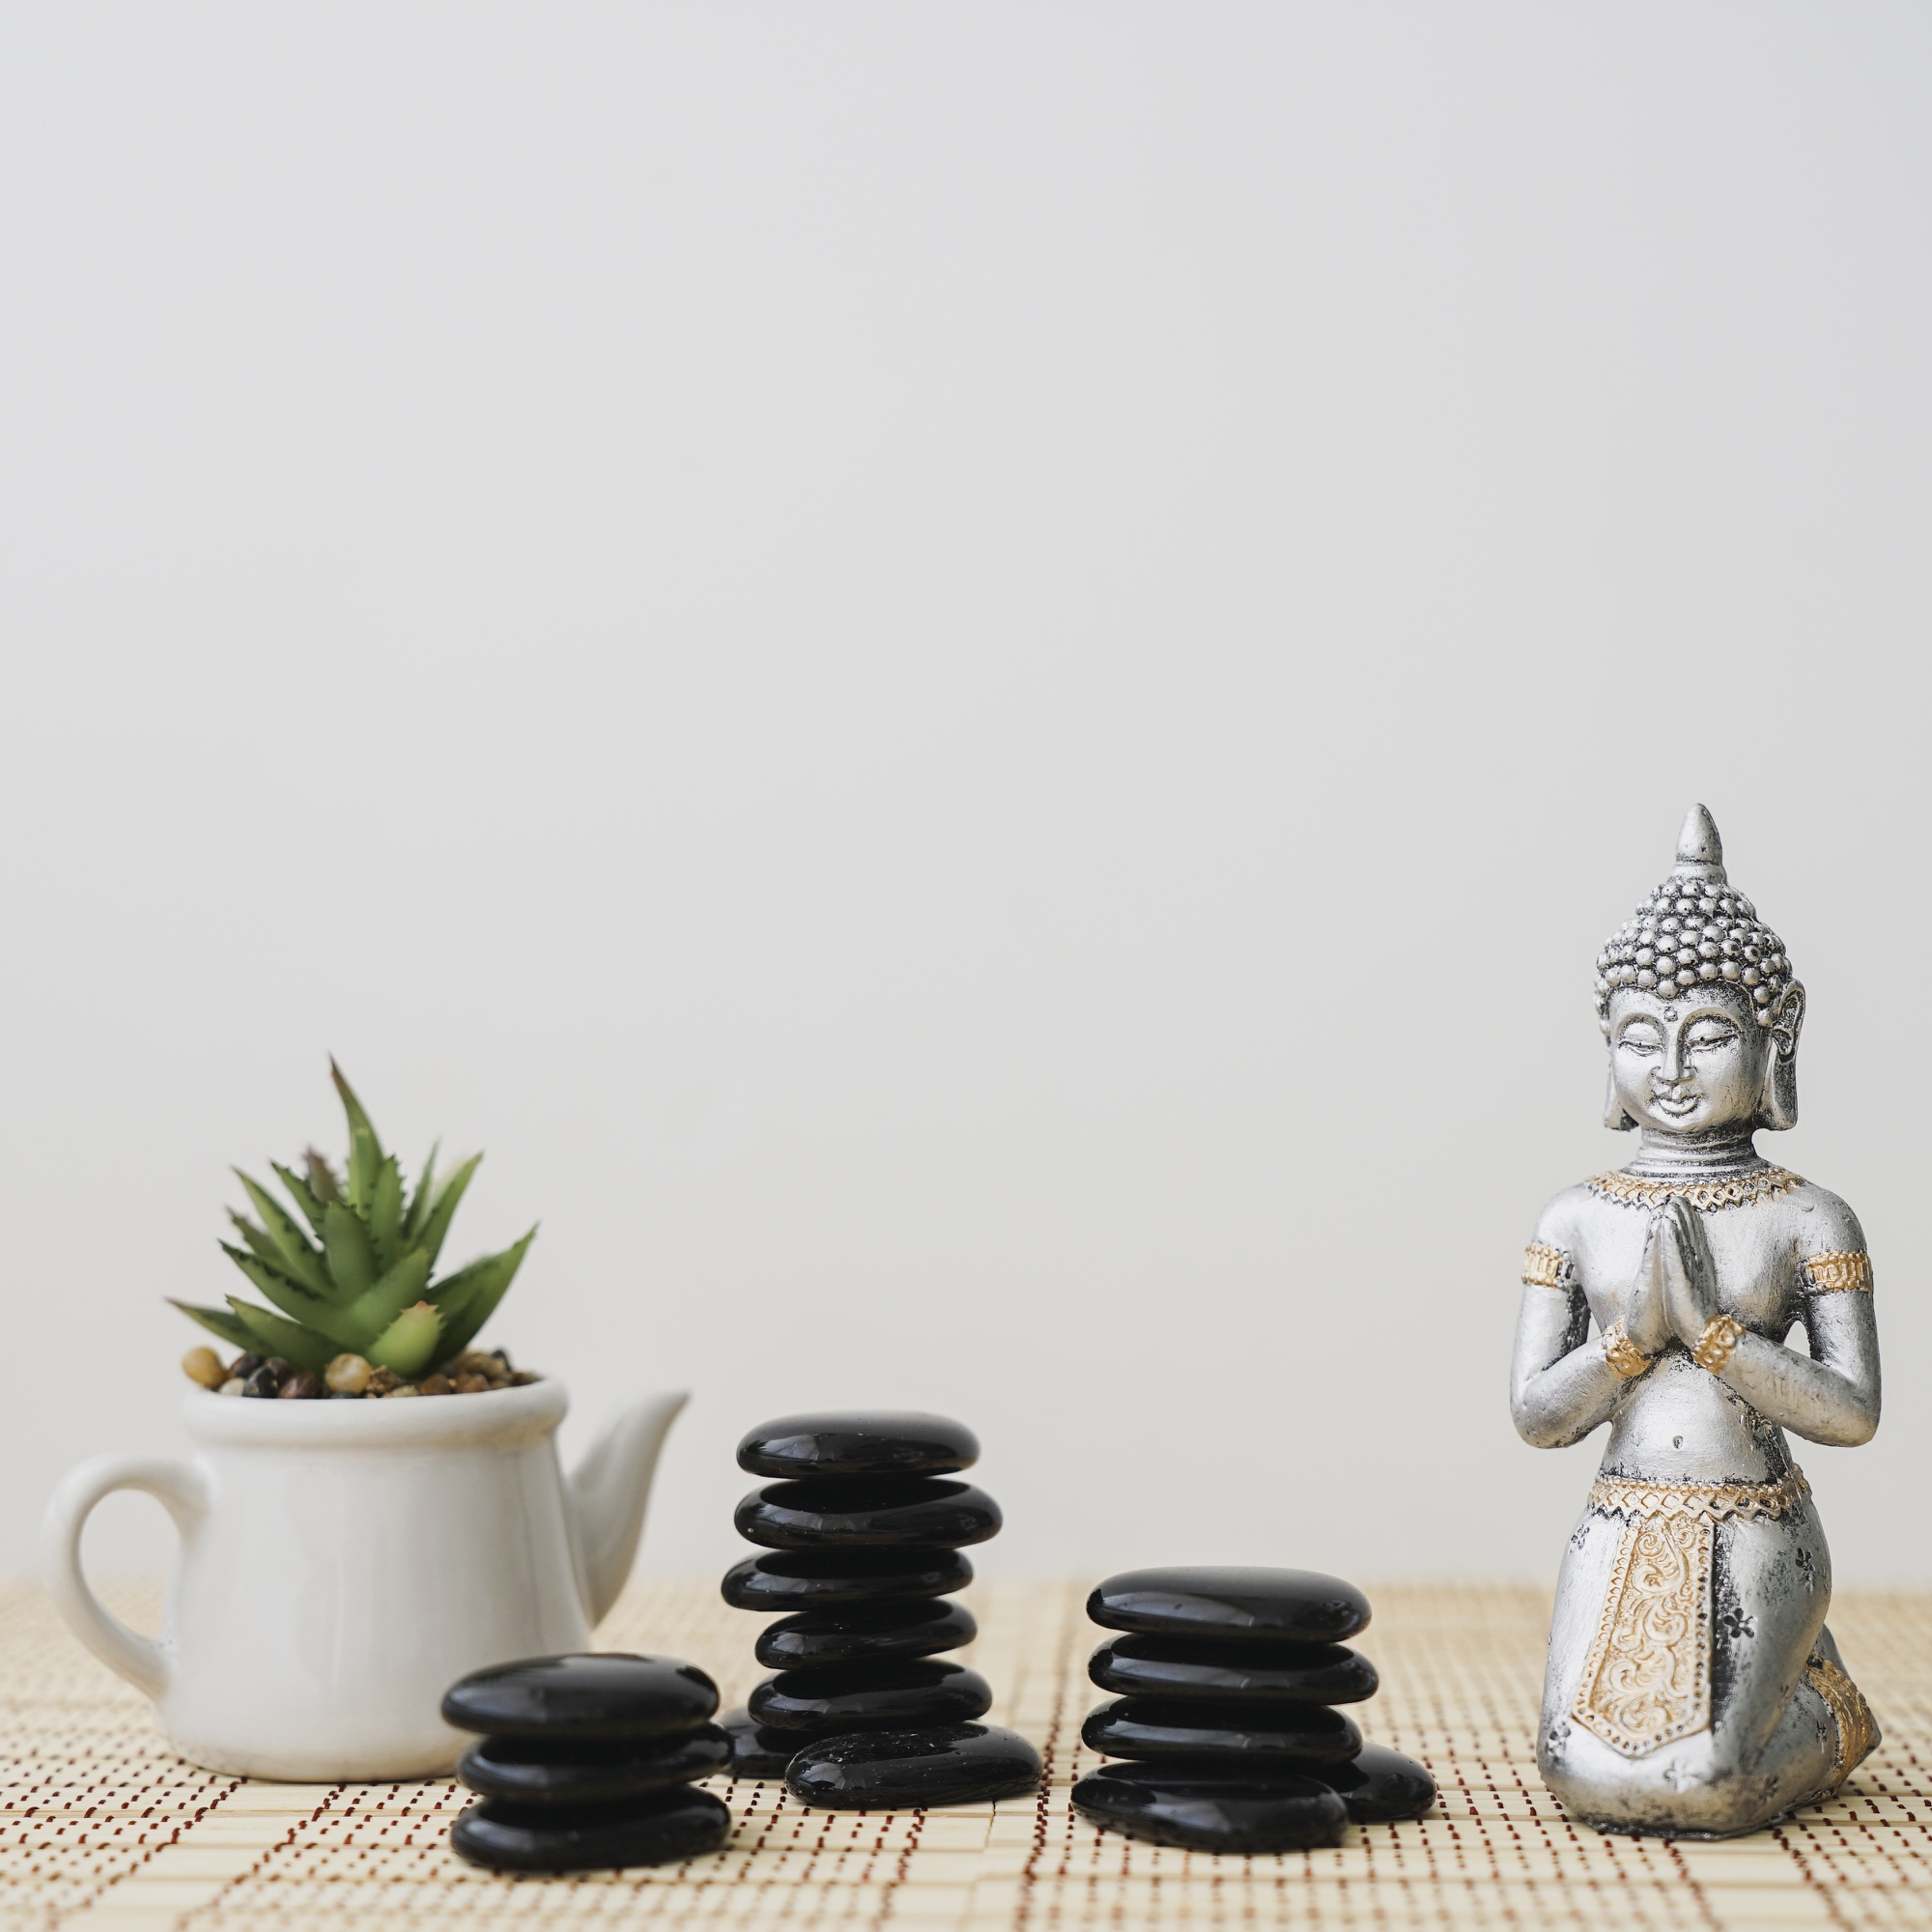 Figure of buddha next to piles of volcanic stones and pot